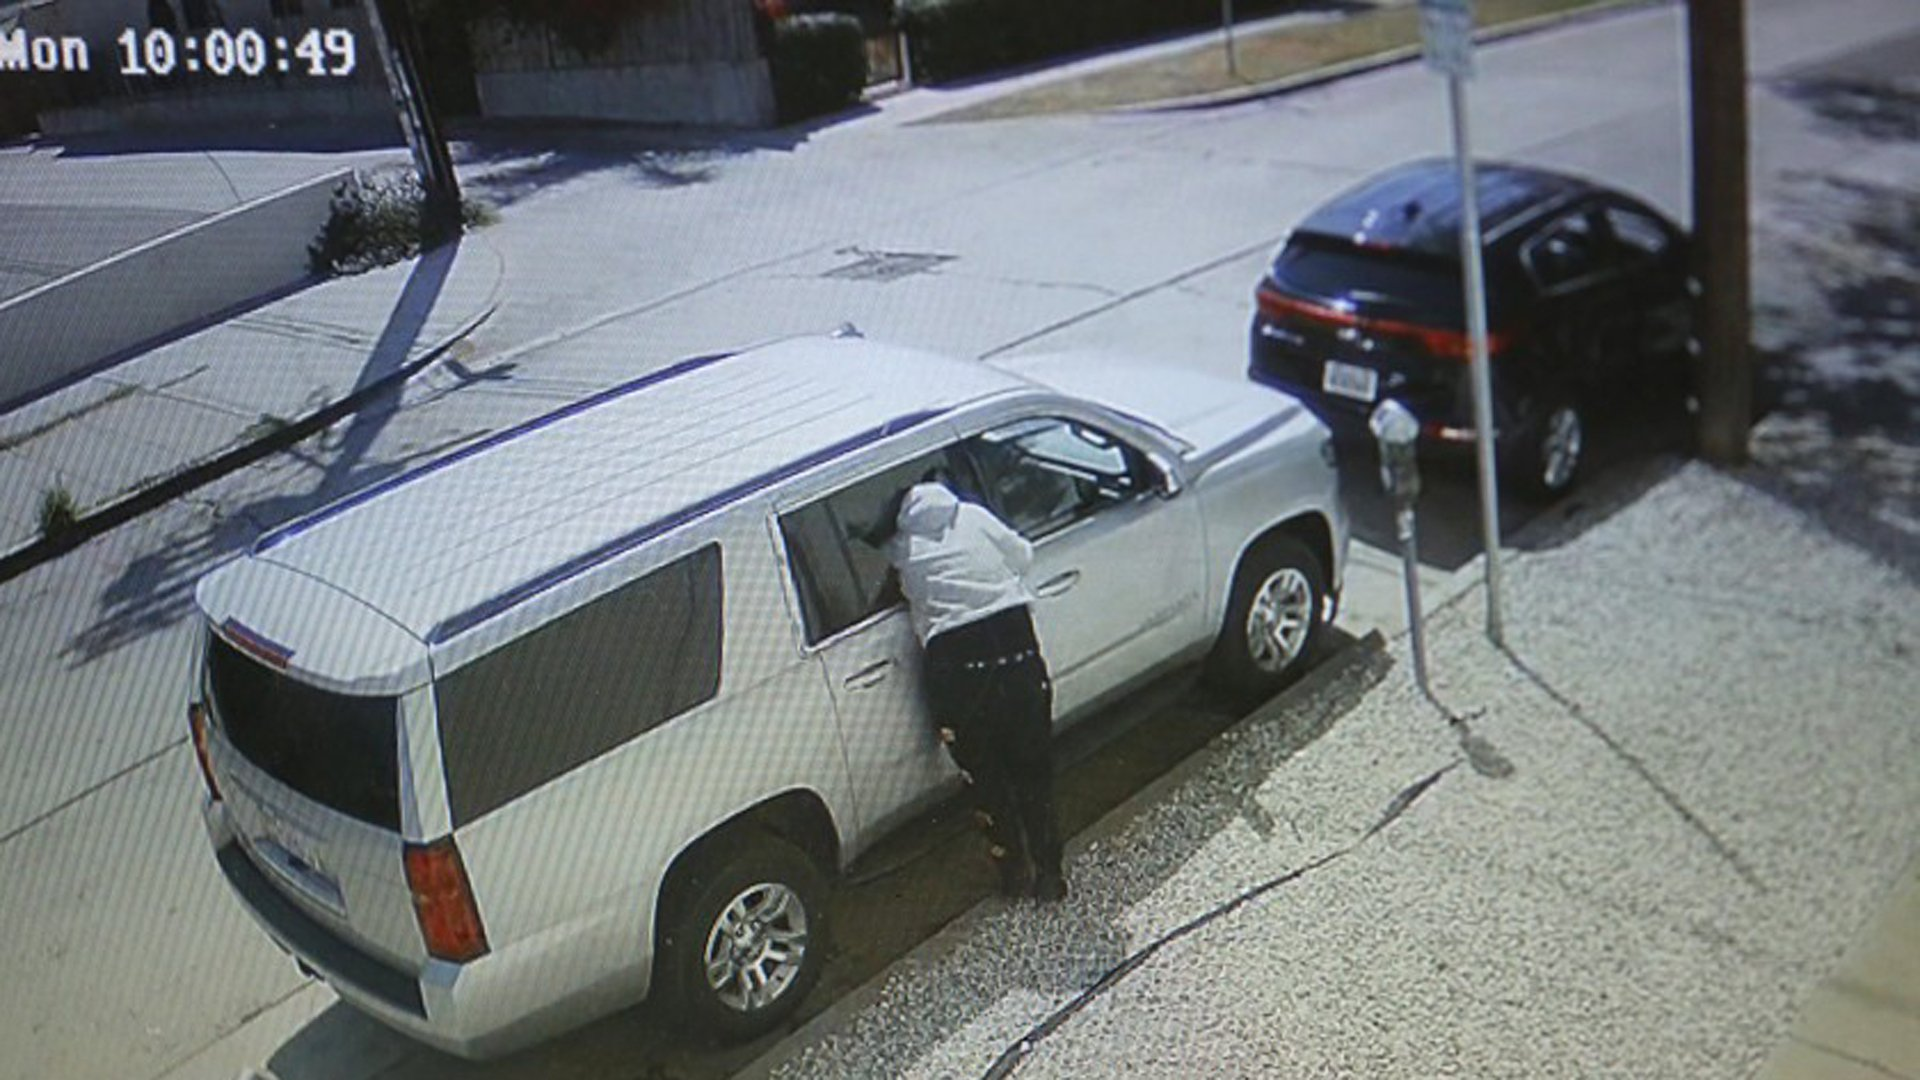 A person burglarizes a vehicle in broad daylight and is caught on video at La Jolla and Melrose avenues in Los Angeles.(Credit: Genaro Molina / Los Angeles Times)